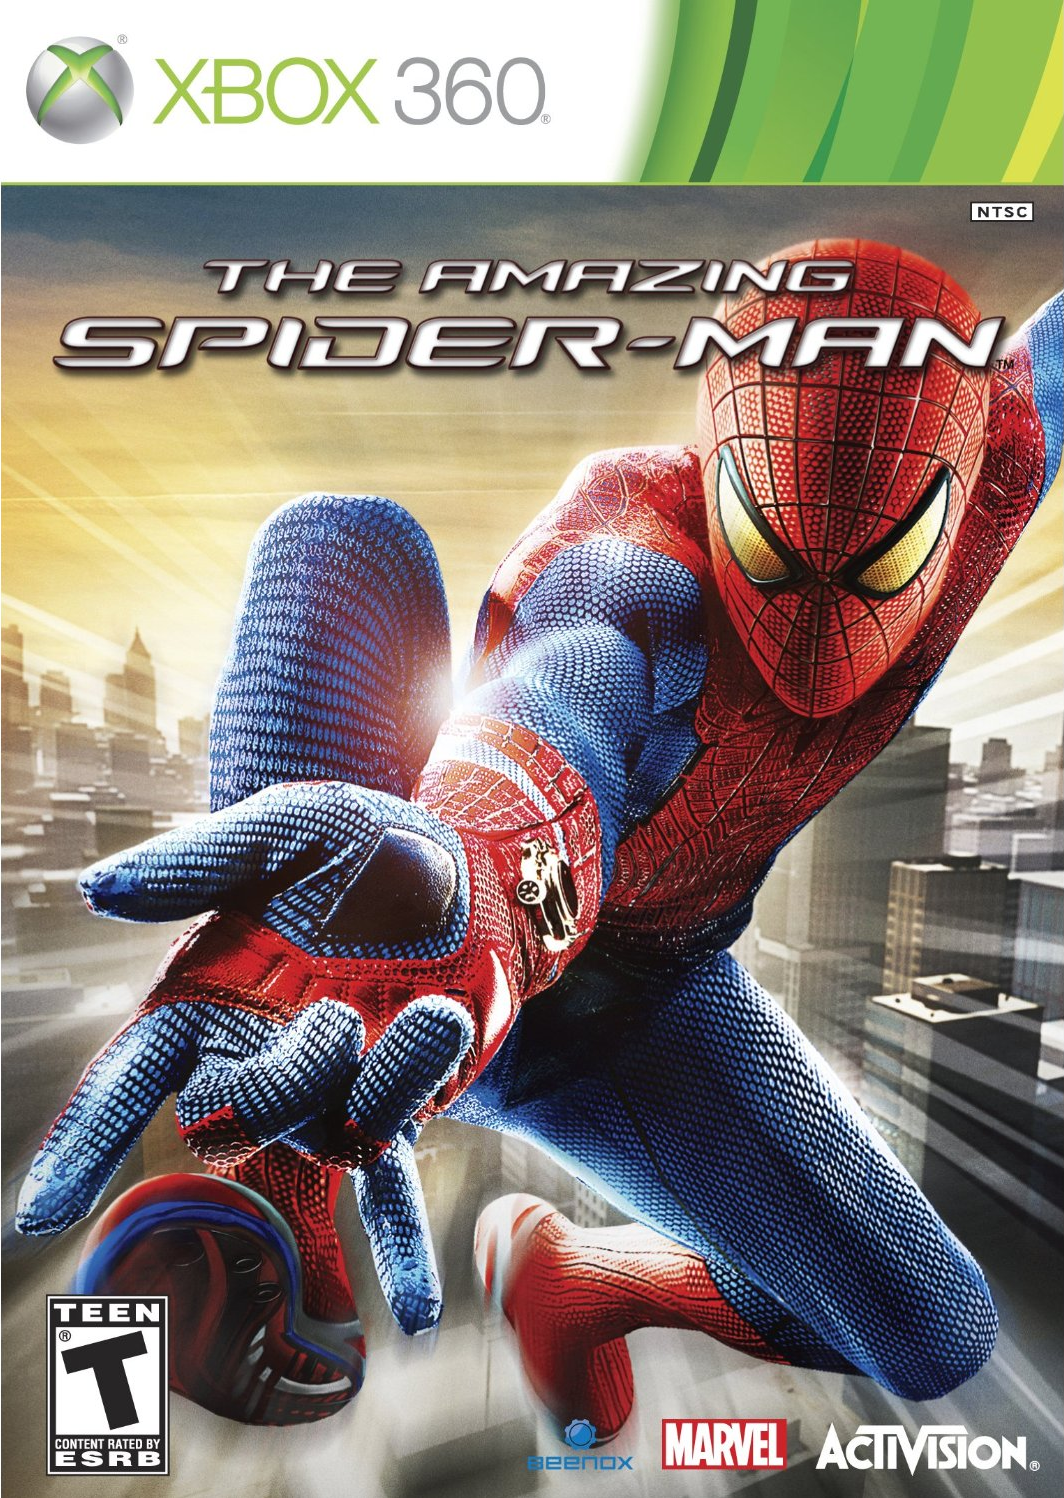 The Amazing Spider-Man - Xbox 360 game 1.png